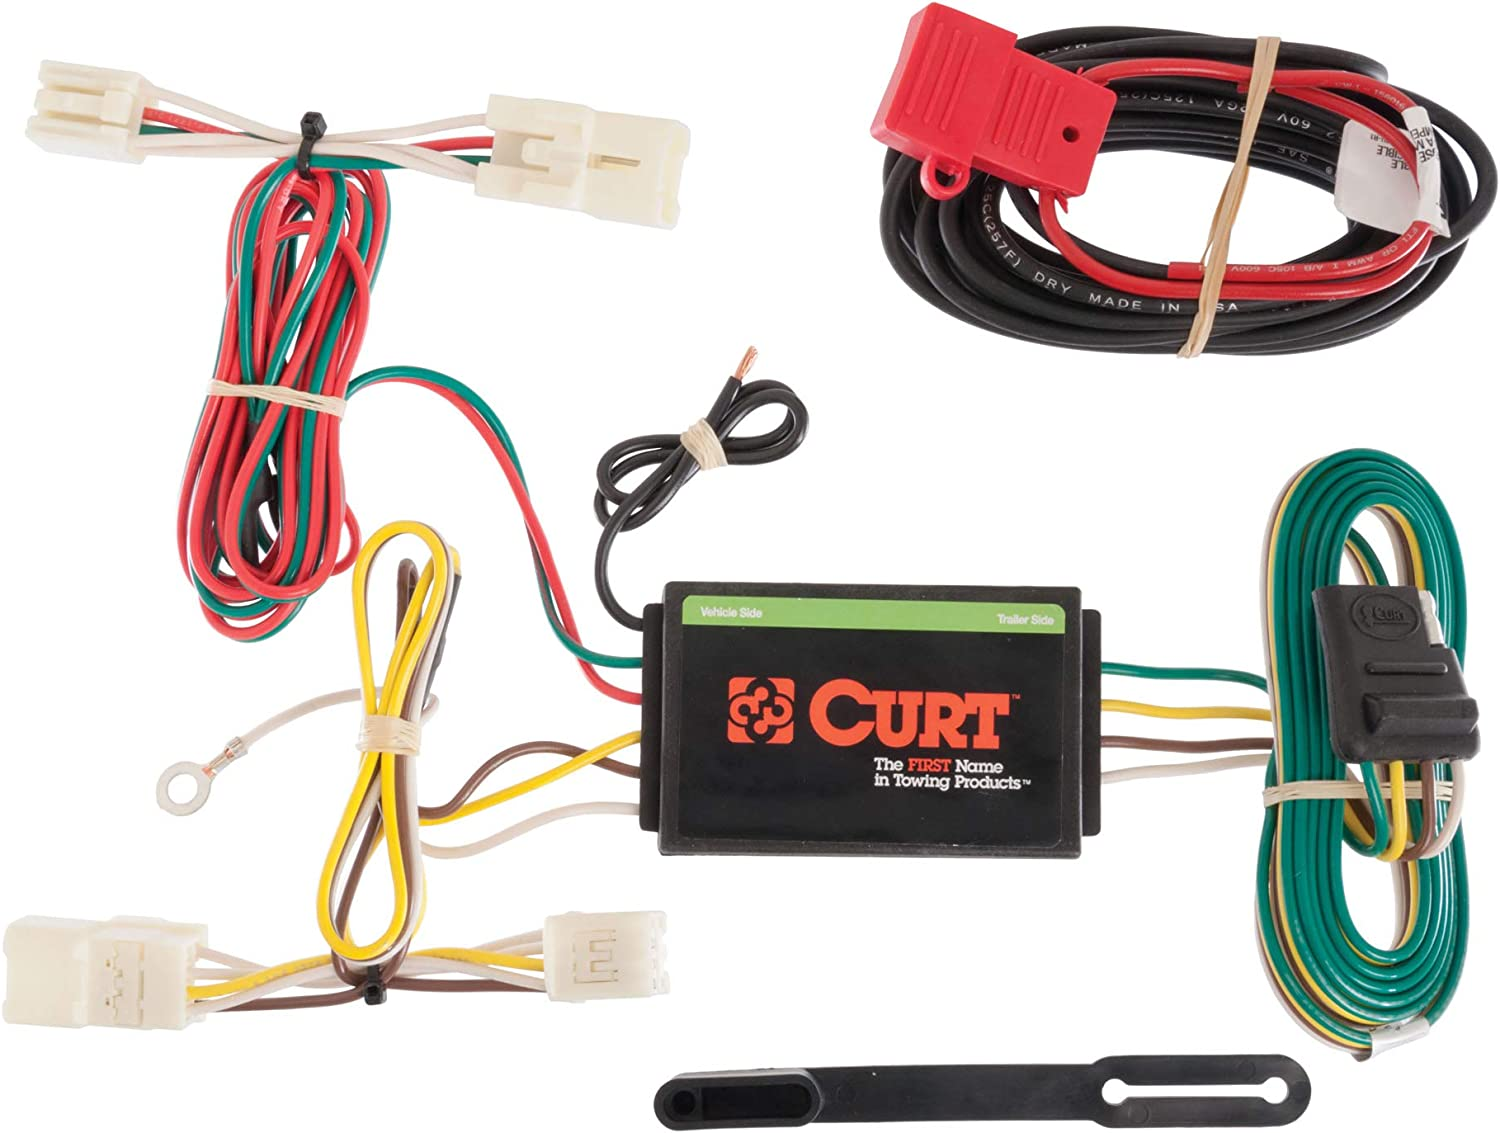 Curt Trailer Wiring Diagram from images-na.ssl-images-amazon.com